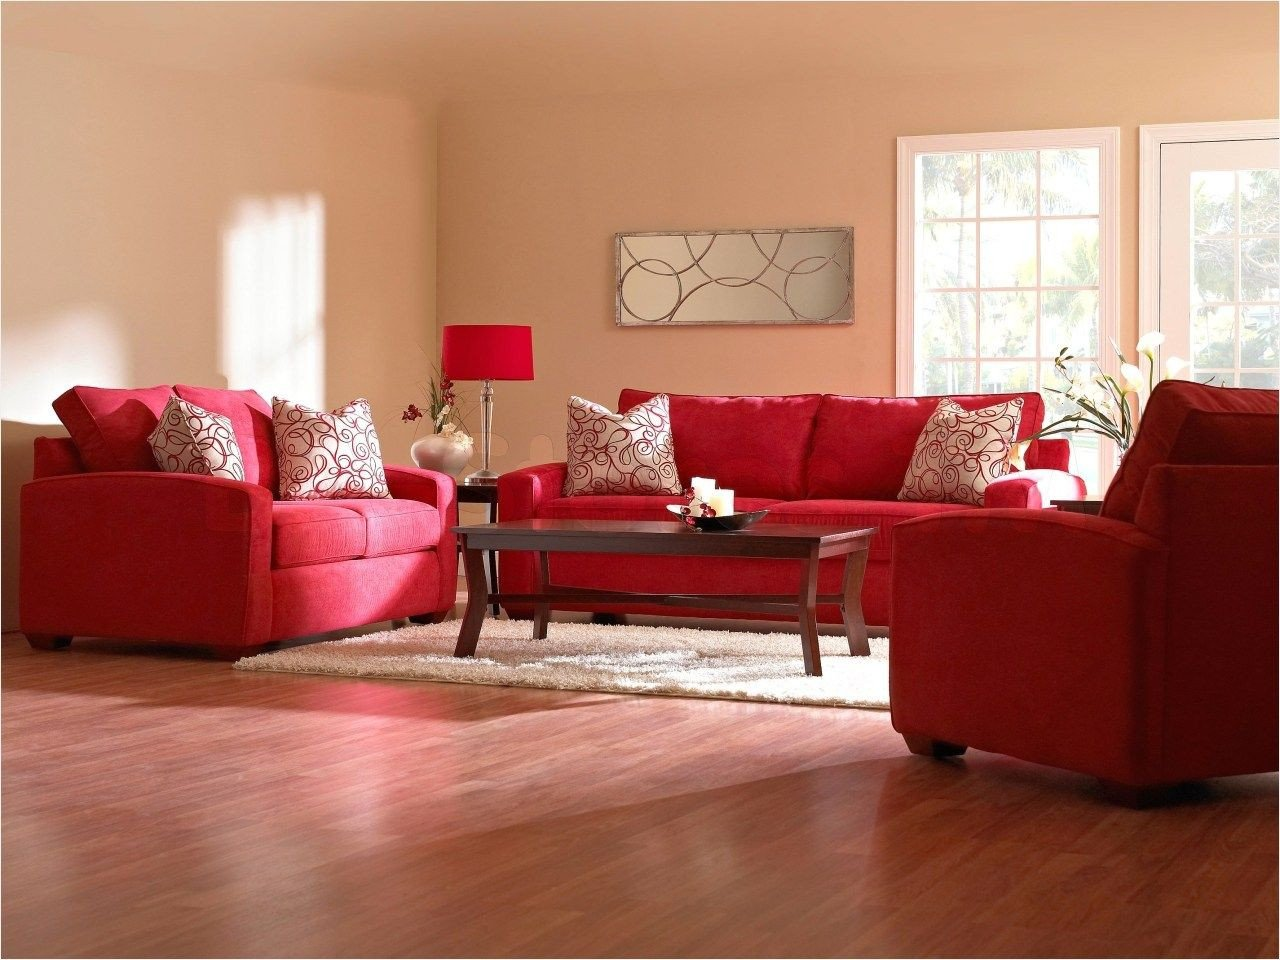 Comfortable Living Room Decorating Ideas Inspirational 40 fortable Living Room Decorating Ideas Awesome Living Room